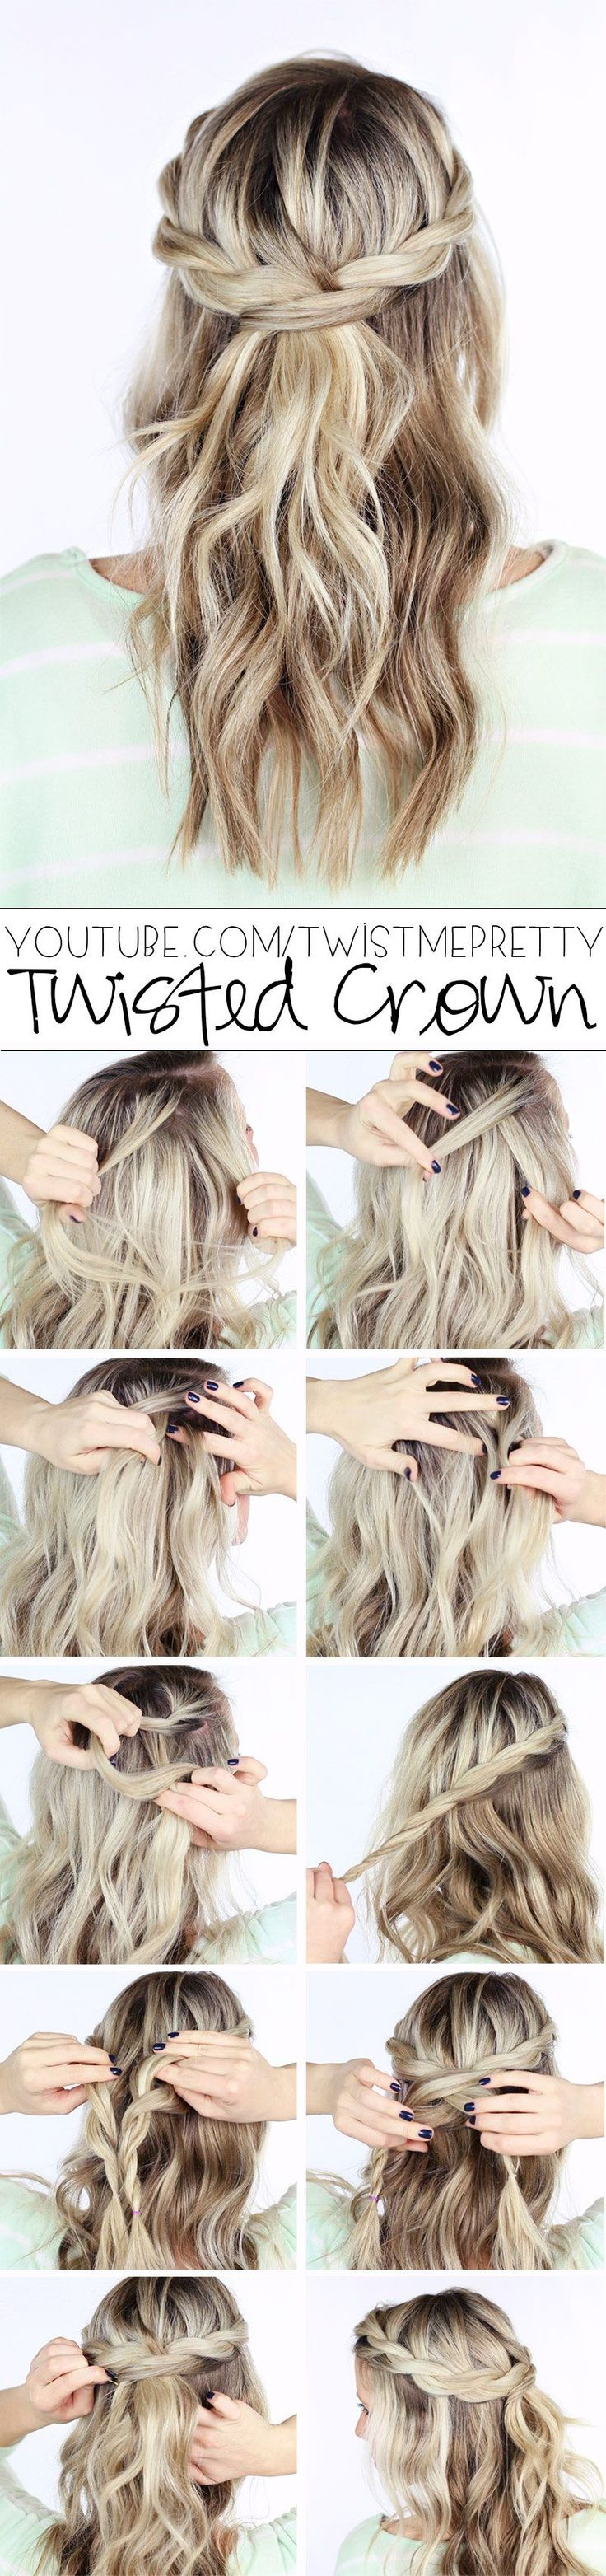 DIY twisted braid crown hairstyle